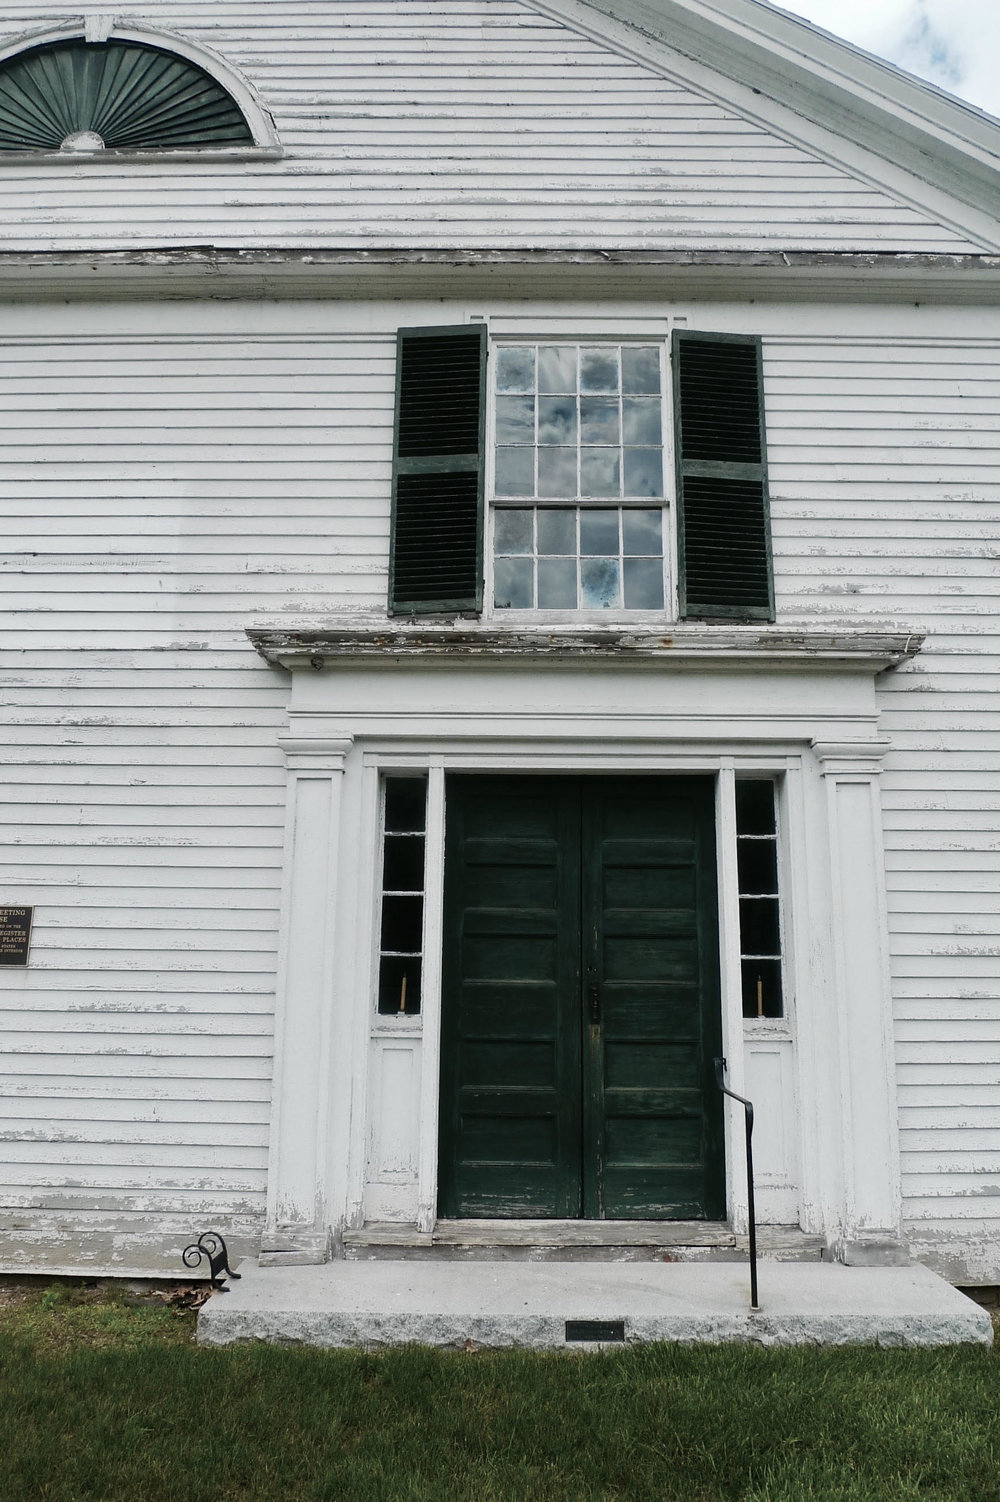 The Union Church, built in 1840, is a conservative mix of the late Georgian and Greek revival styles.